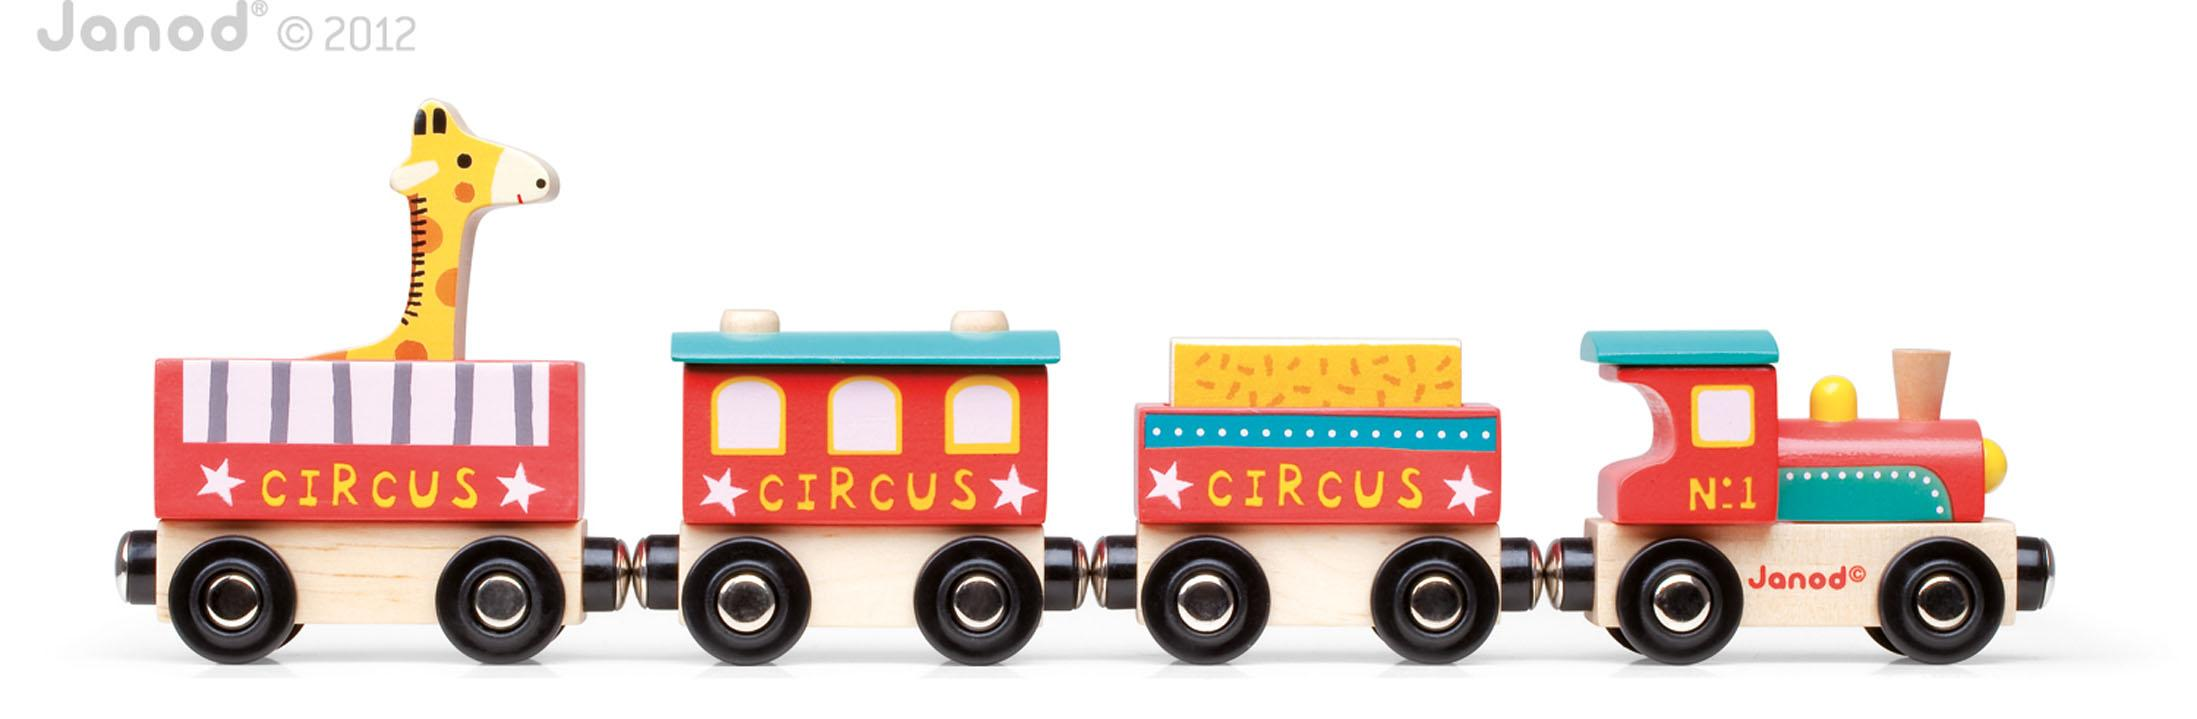 Amazon.com: Janod Story Train Circus: Toys & Games